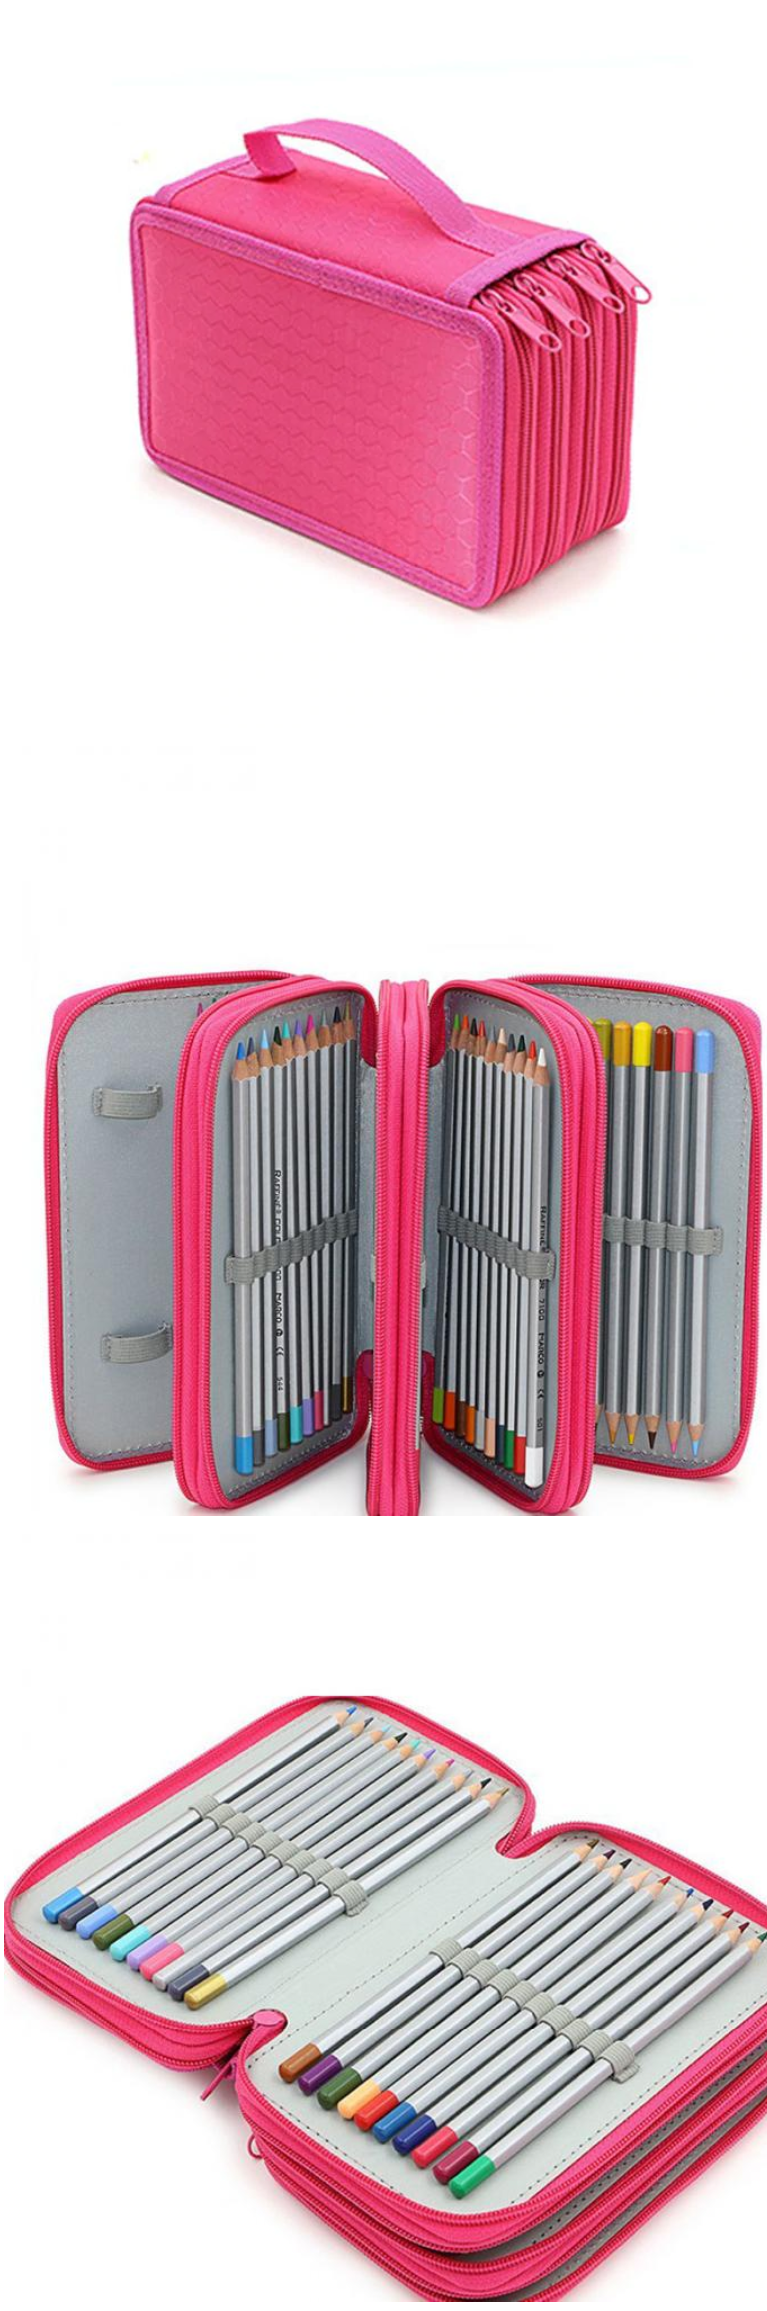 Canvas Pencil Case Orgnaizer Many Layers Suitcase - Otrio Stationery & Gifts